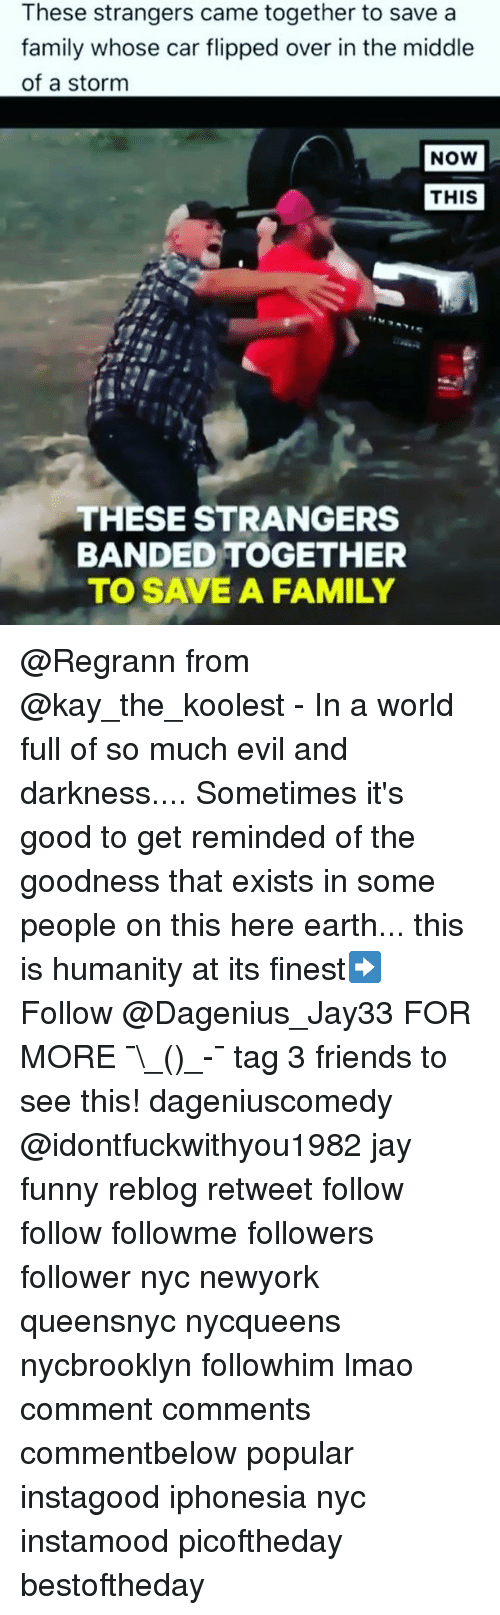 Kaye: These strangers came together to save a  family whose car flipped over in the middle  of a storm  NOW  THIS  THESE STRANGERS  BANDED TOGETHER  TO SAVE A FAMILY @Regrann from @kay_the_koolest - In a world full of so much evil and darkness.... Sometimes it's good to get reminded of the goodness that exists in some people on this here earth... this is humanity at its finest➡️ Follow @Dagenius_Jay33 FOR MORE ¯\_(ツ)_-¯ tag 3 friends to see this! dageniuscomedy @idontfuckwithyou1982 jay funny reblog retweet follow follow followme followers follower nyc newyork queensnyc nycqueens nycbrooklyn followhim lmao comment comments commentbelow popular instagood iphonesia nyc instamood picoftheday bestoftheday